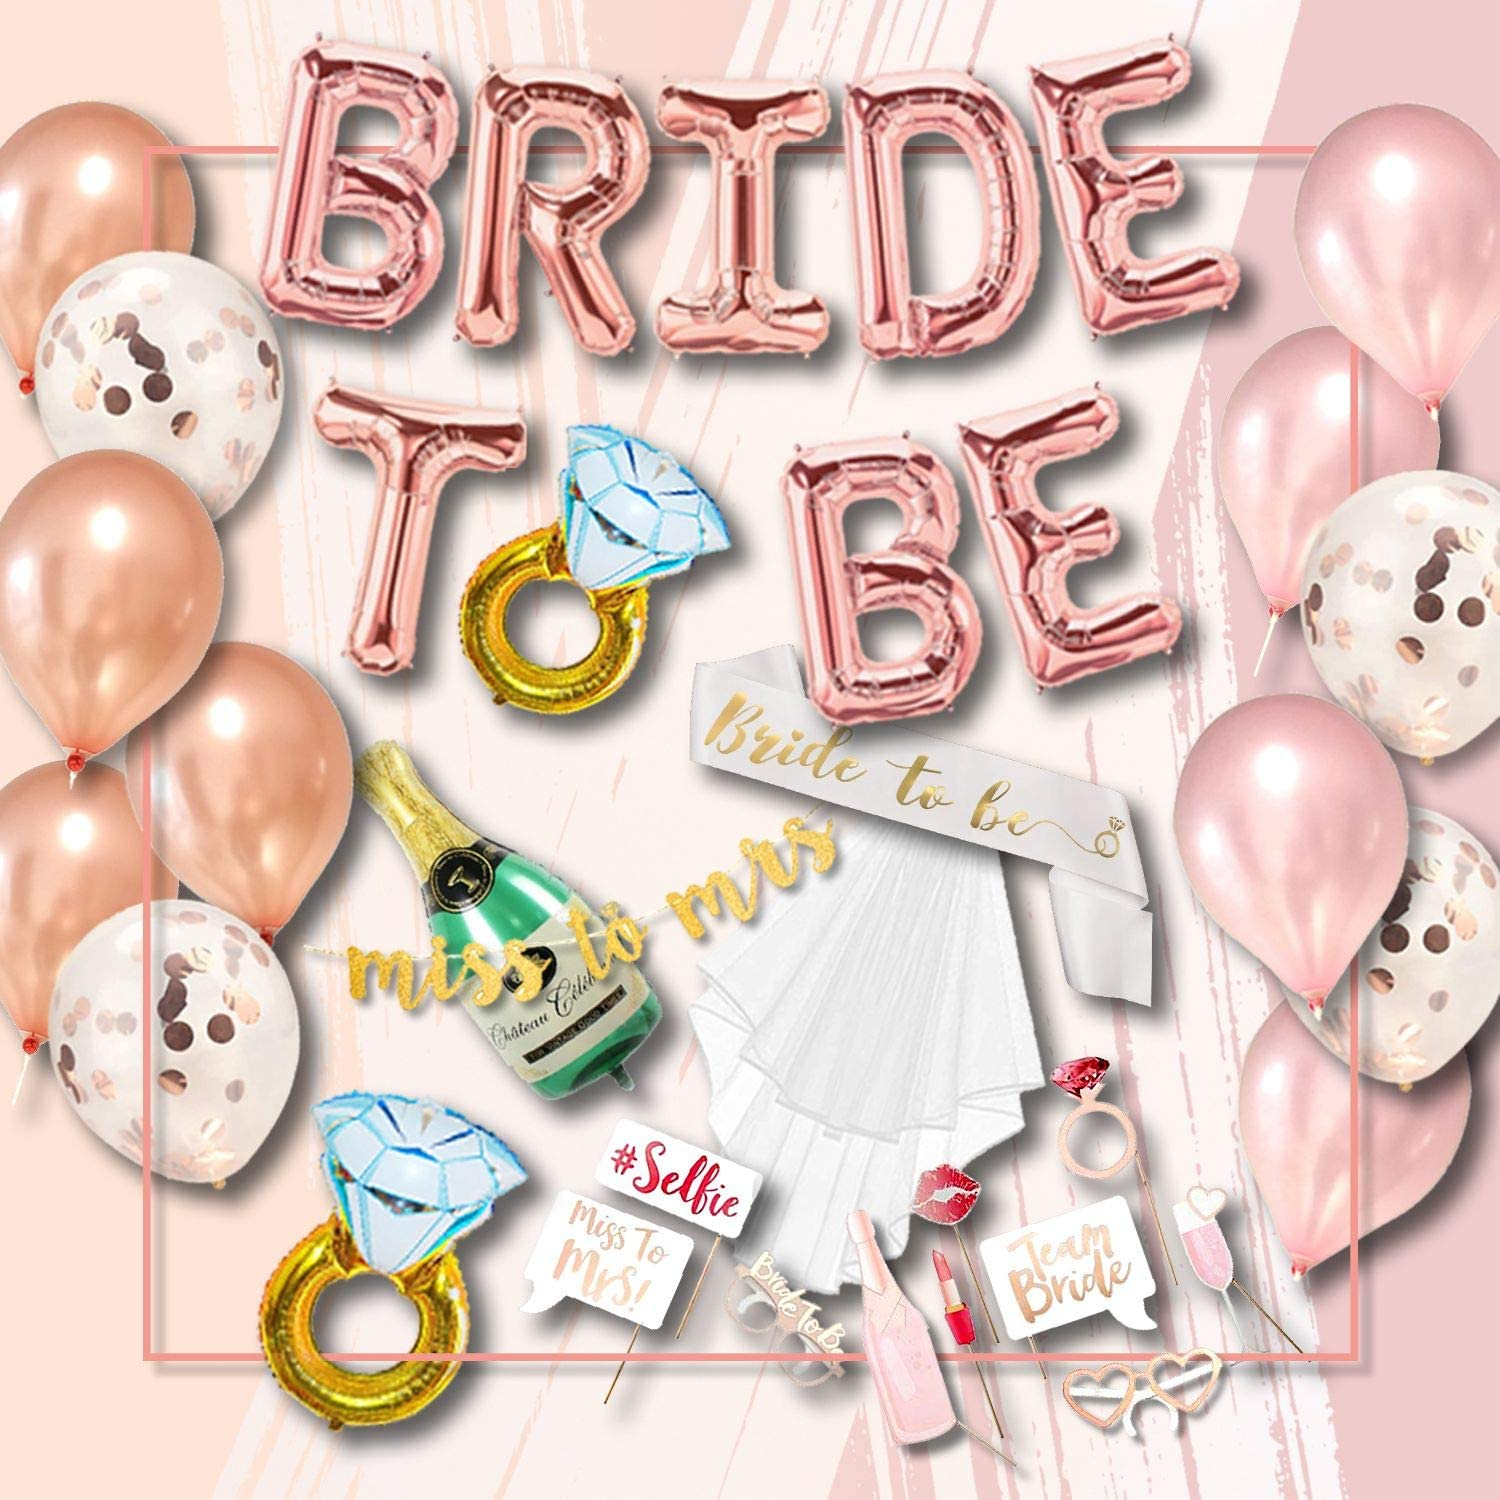 Bachelorette Party Decorations Kit Bridal, Shower Supplies Decor, Bride to Be Sash, Veil, Champagne, Ring, Pink Rose Confetti Gold Balloons, Gold Glitter Miss to Mrs Banner, Photo Props